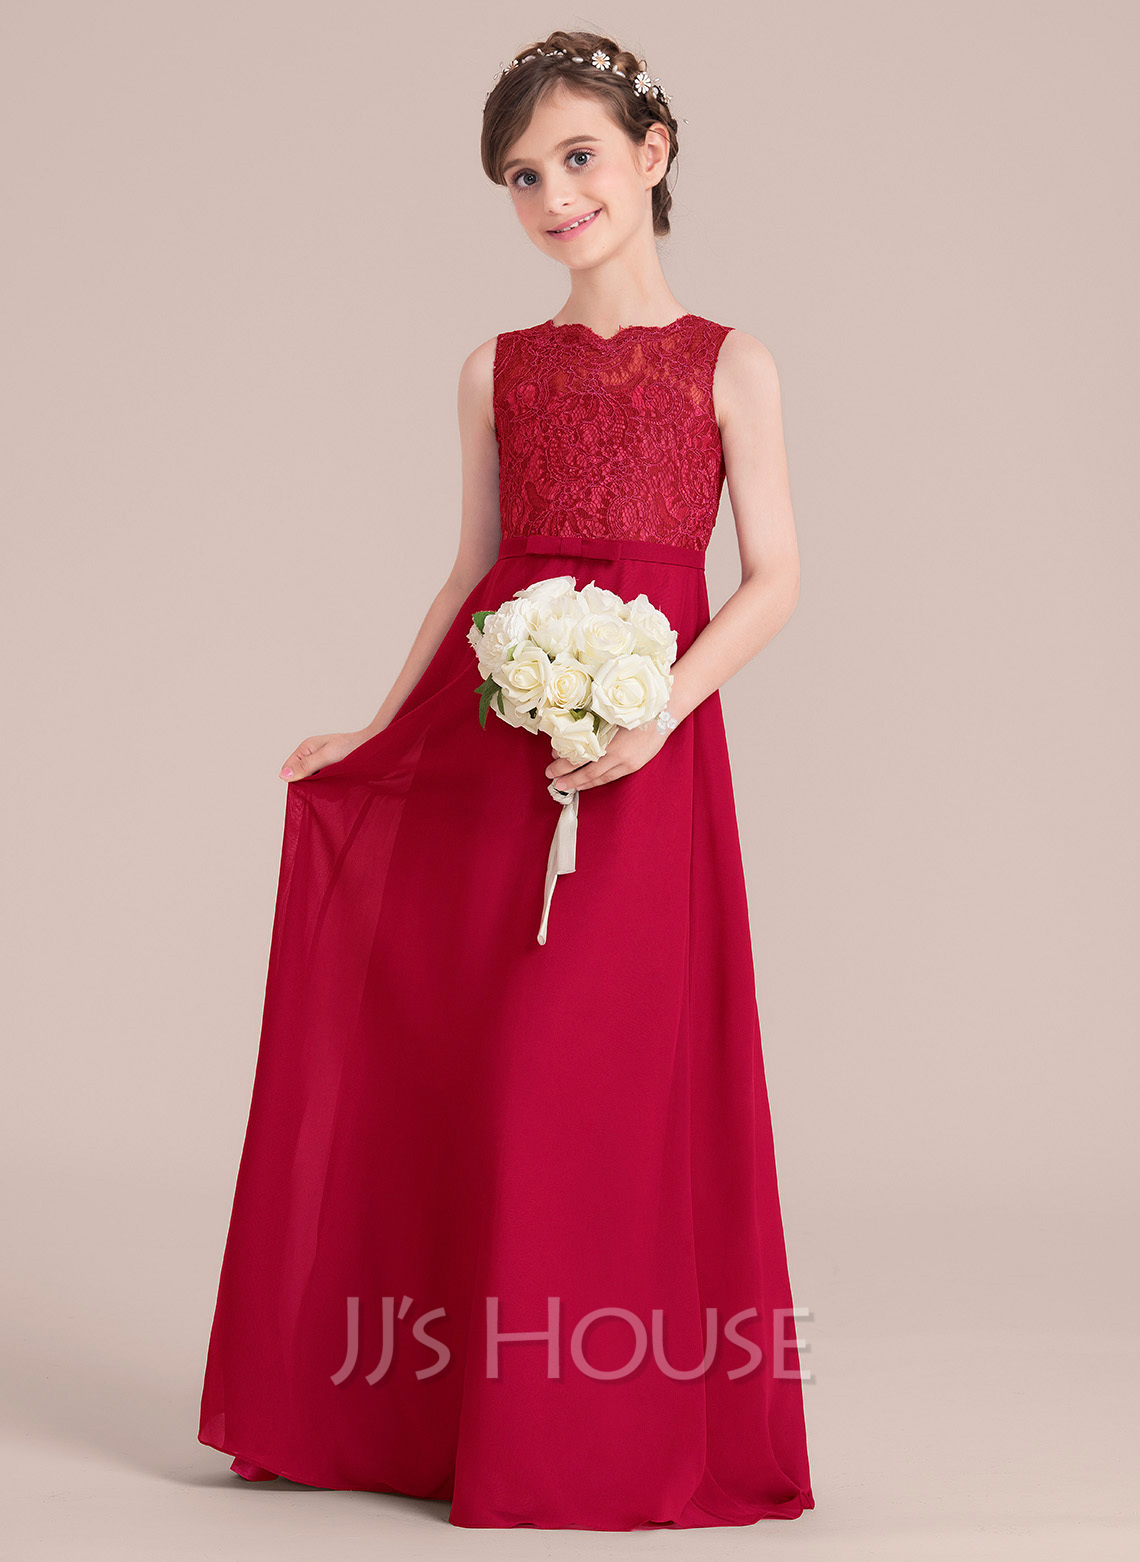 a987f56b445 A-Line Princess Scoop Neck Floor-Length Chiffon Junior Bridesmaid Dress  With Bow. Loading zoom